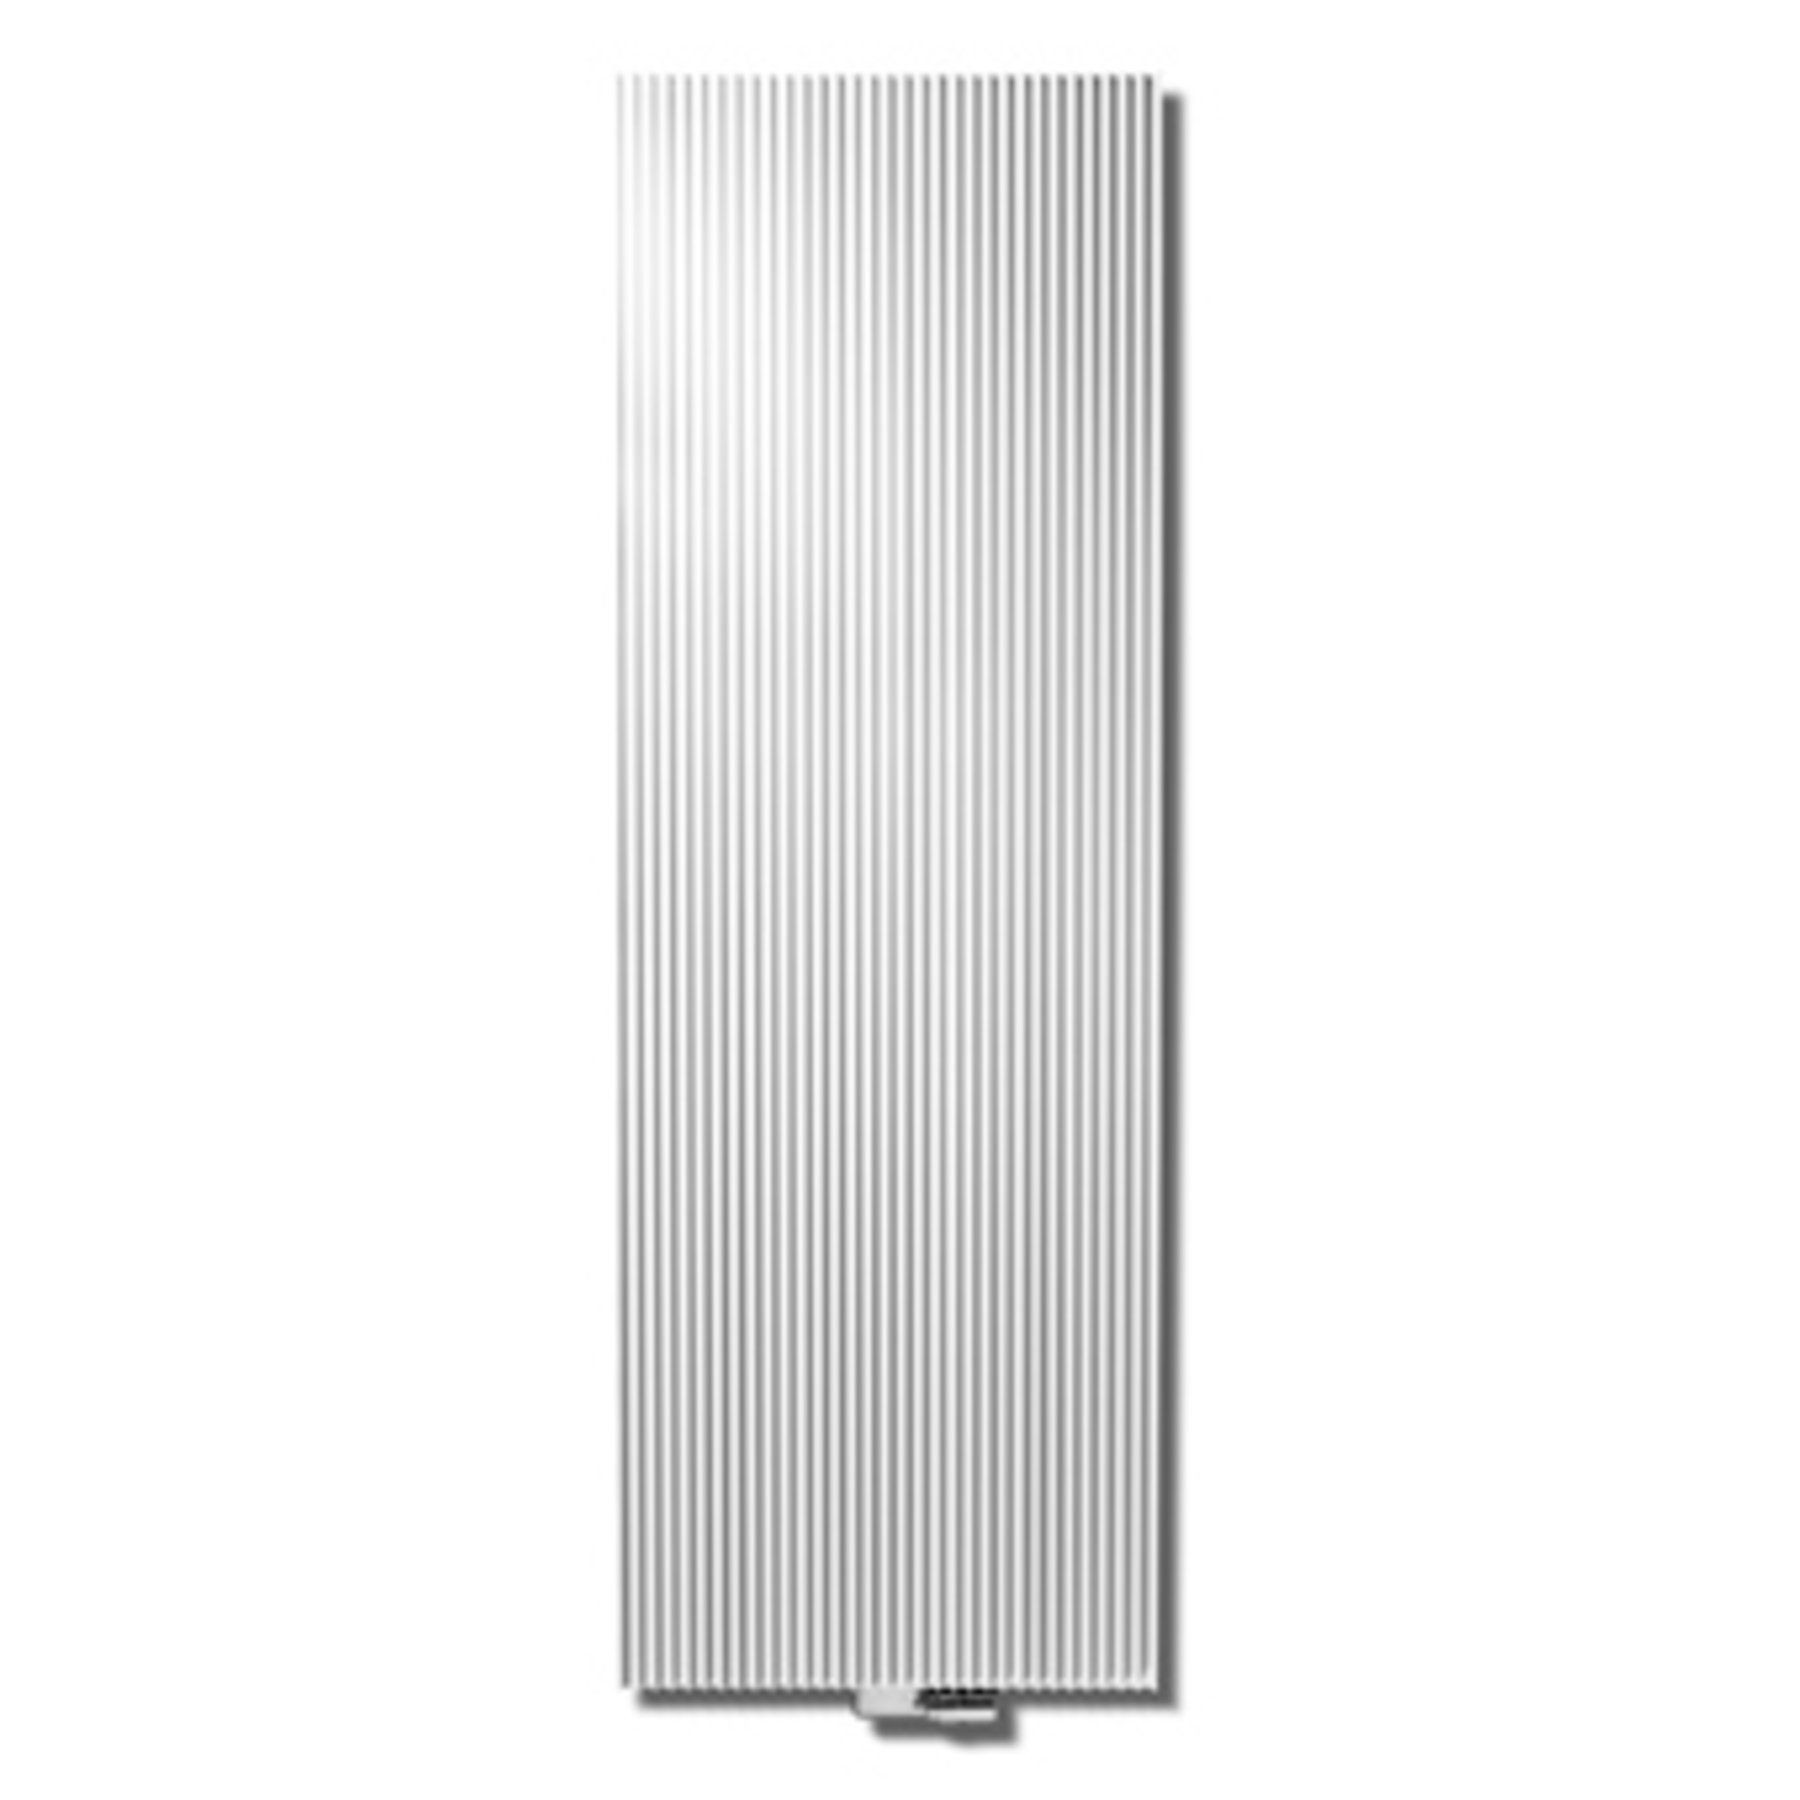 Vasco Canyon designradiator verticaal 1800x605mm 2123 watt aansluiting 79 antraciet